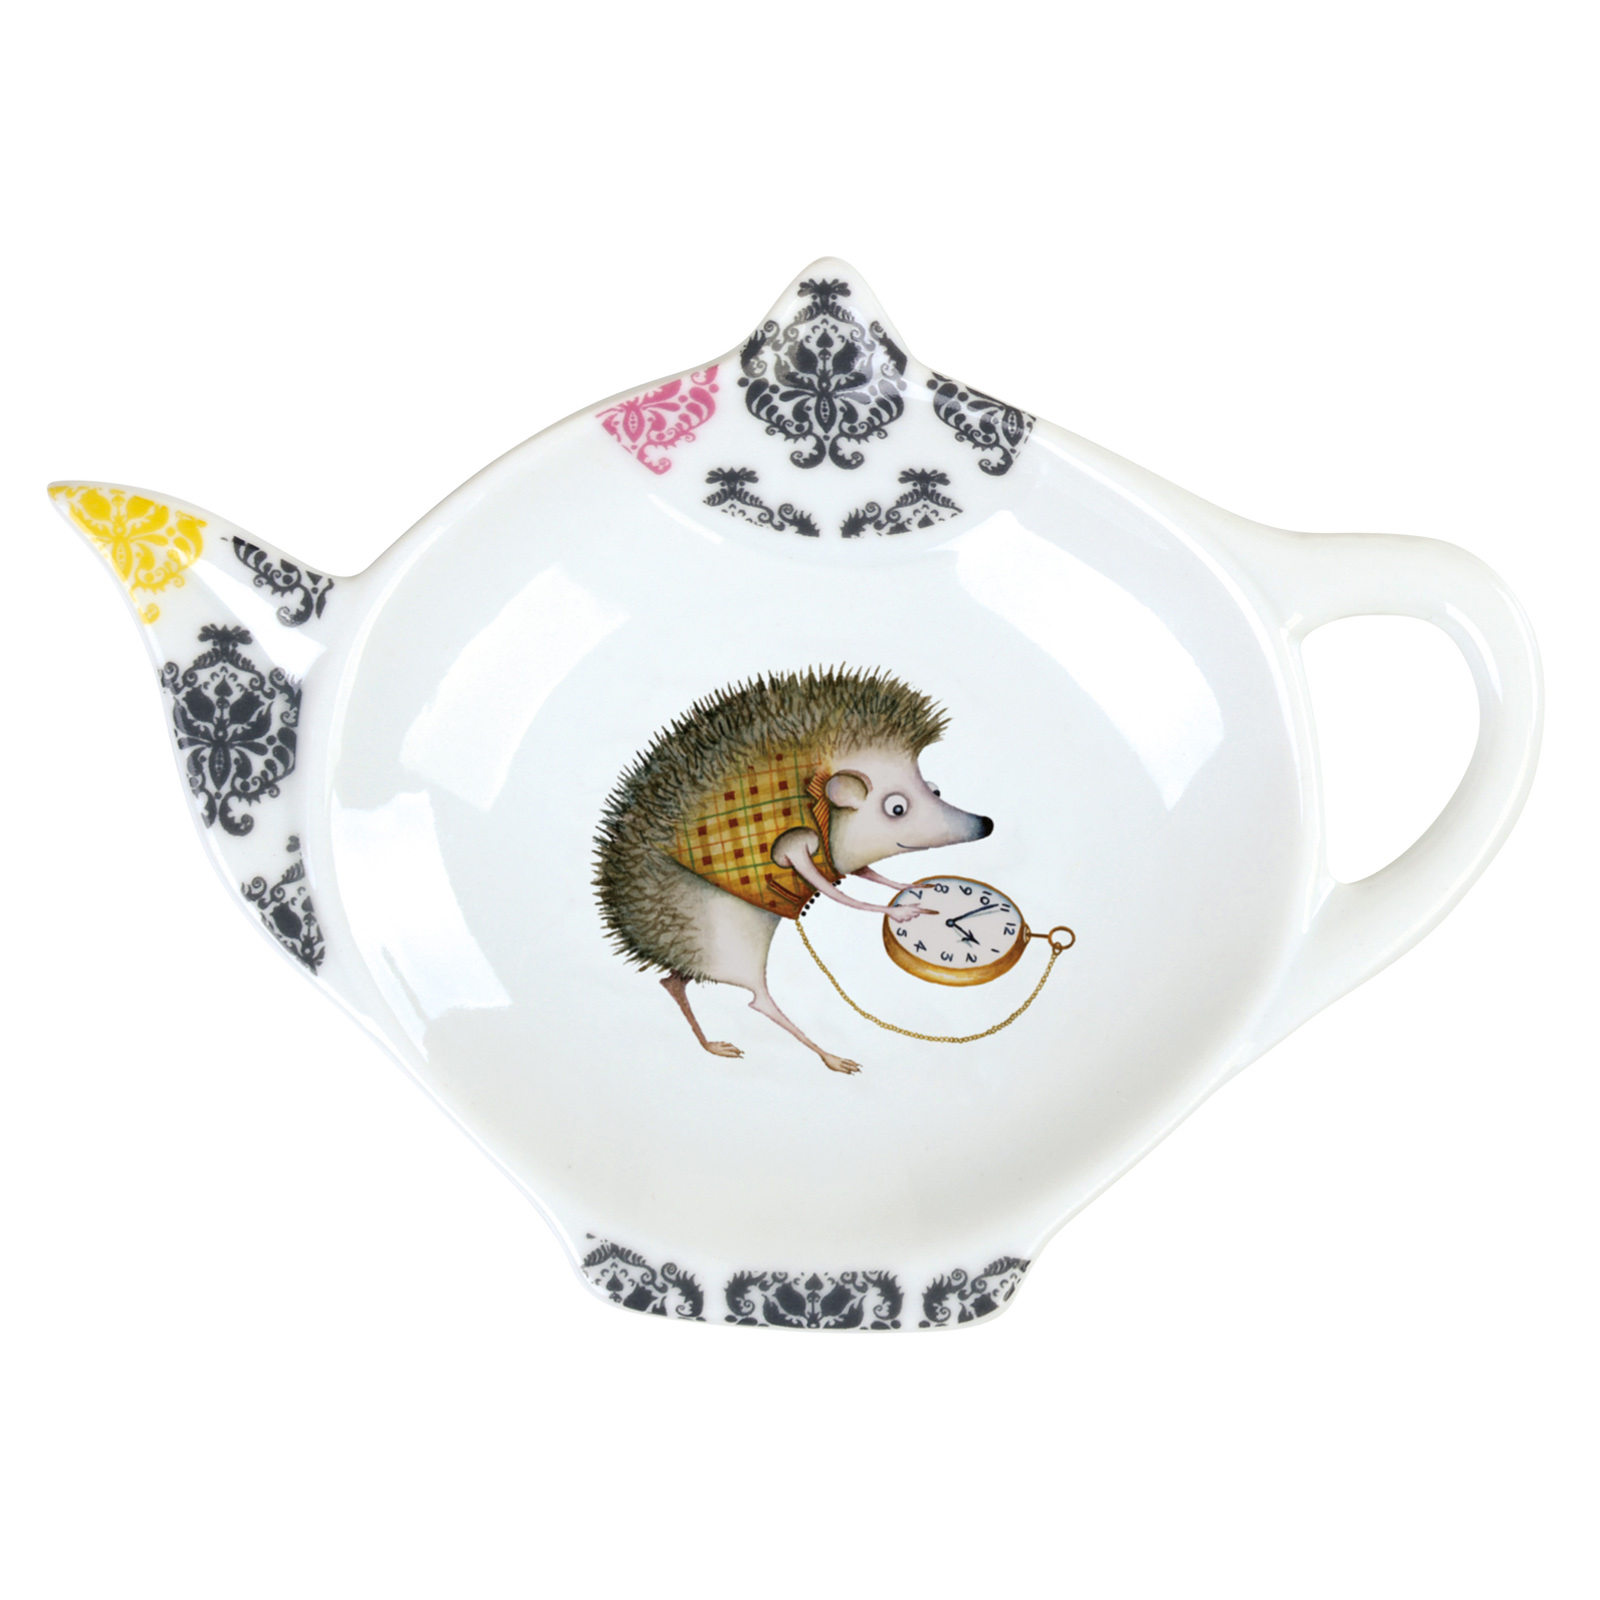 Funimals Hedgehog Teabag Tidy by Clare Mackie for BIA